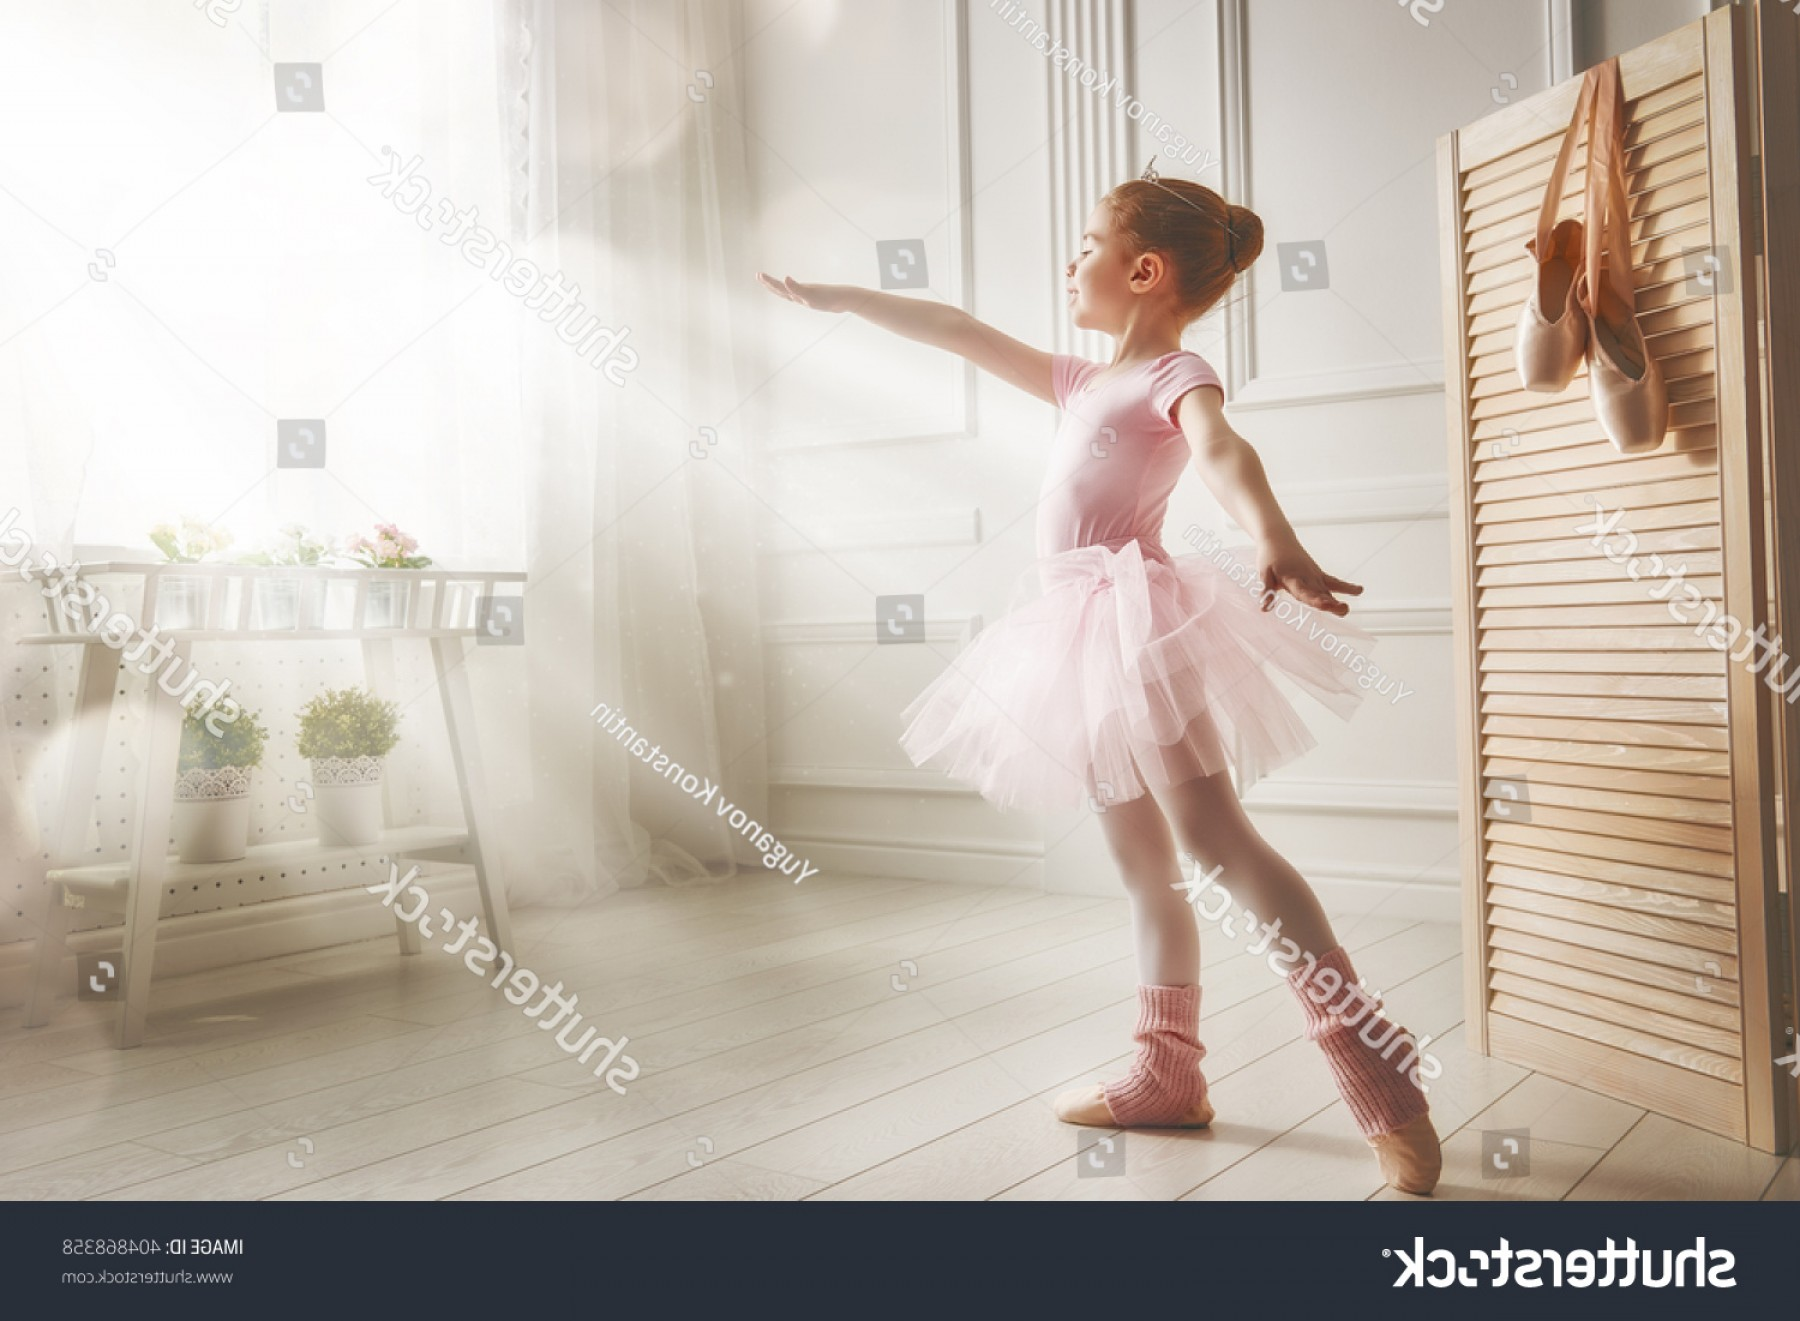 Ballet Vector Babydancer: Cute Little Girl Dreams Becoming Ballerina